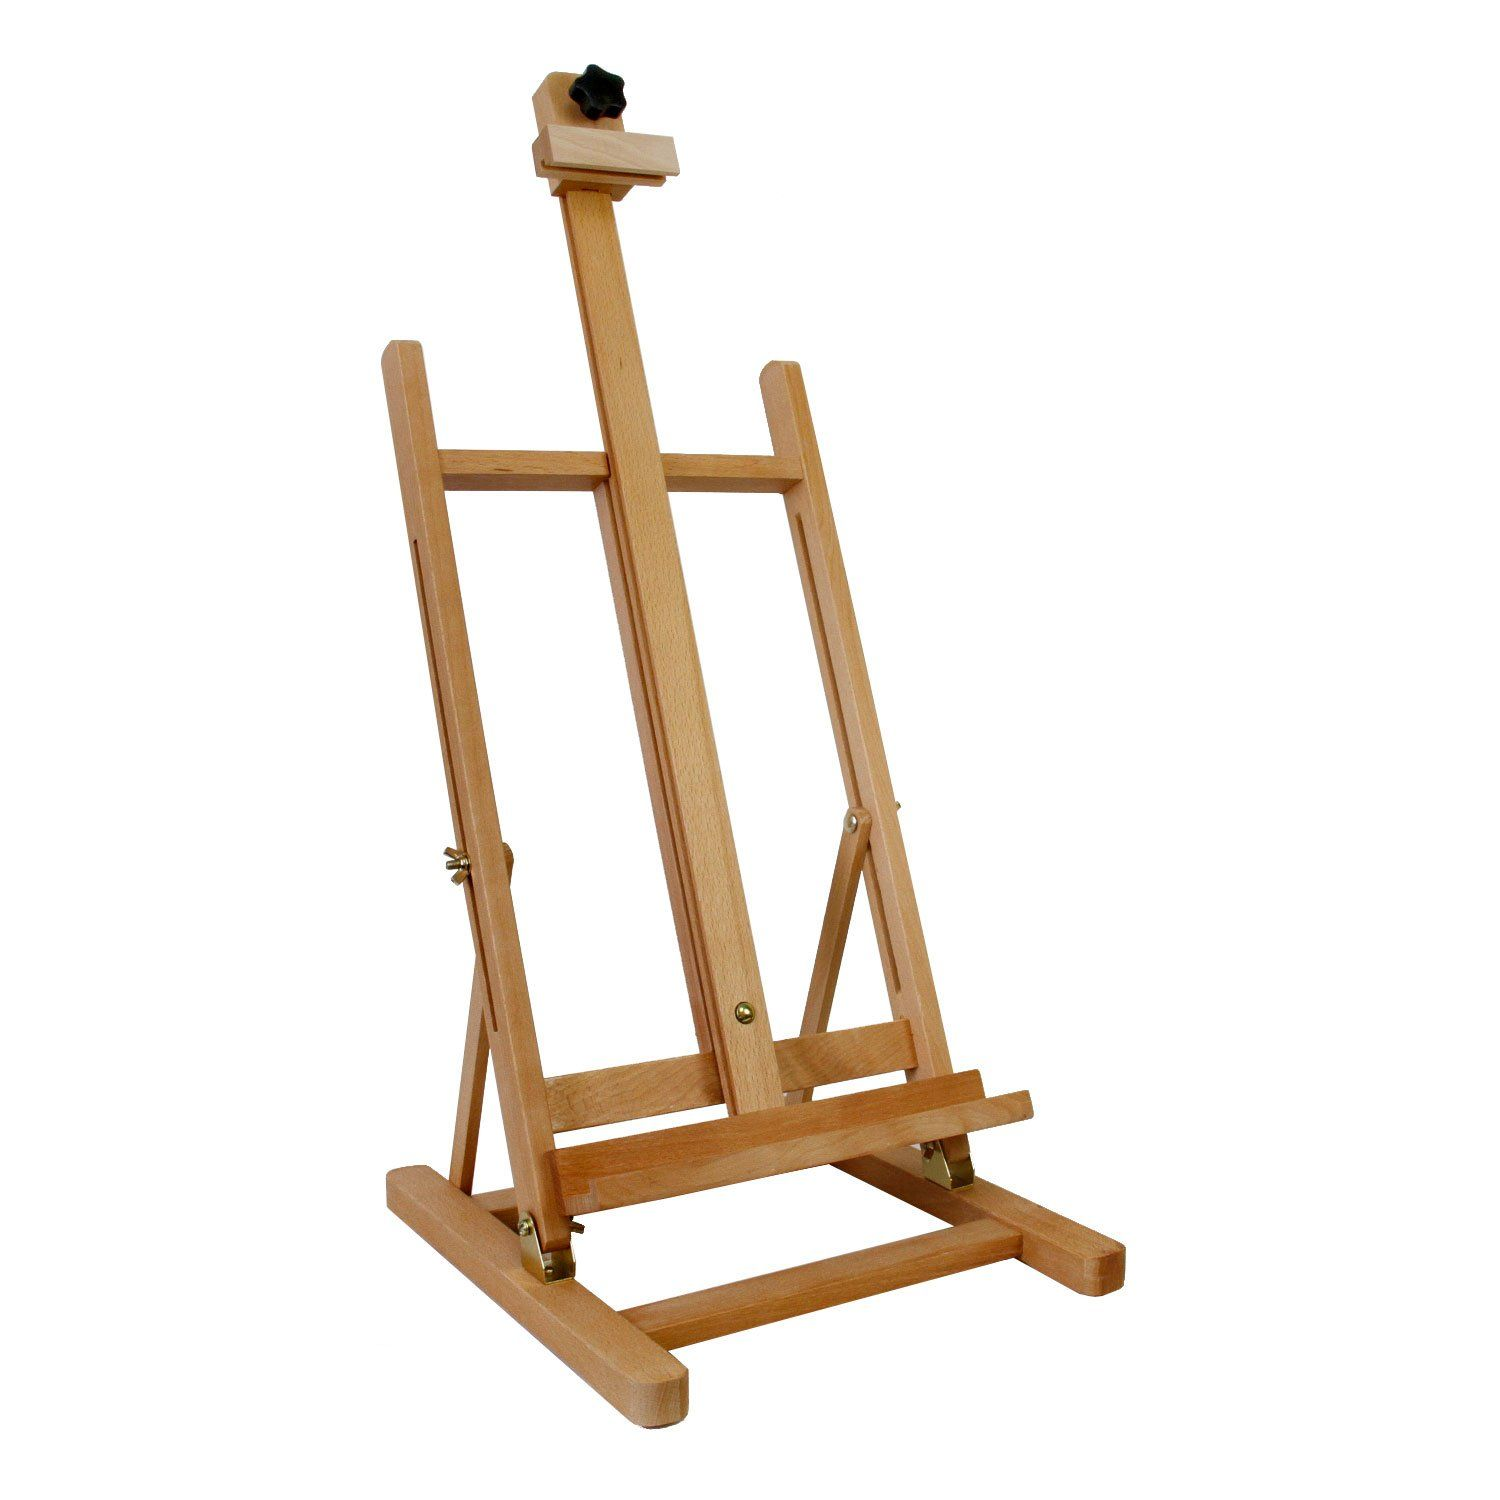 Art Supply Adjustable Easel Beech Tabletop H-Frame Studio Artist Wood Portable